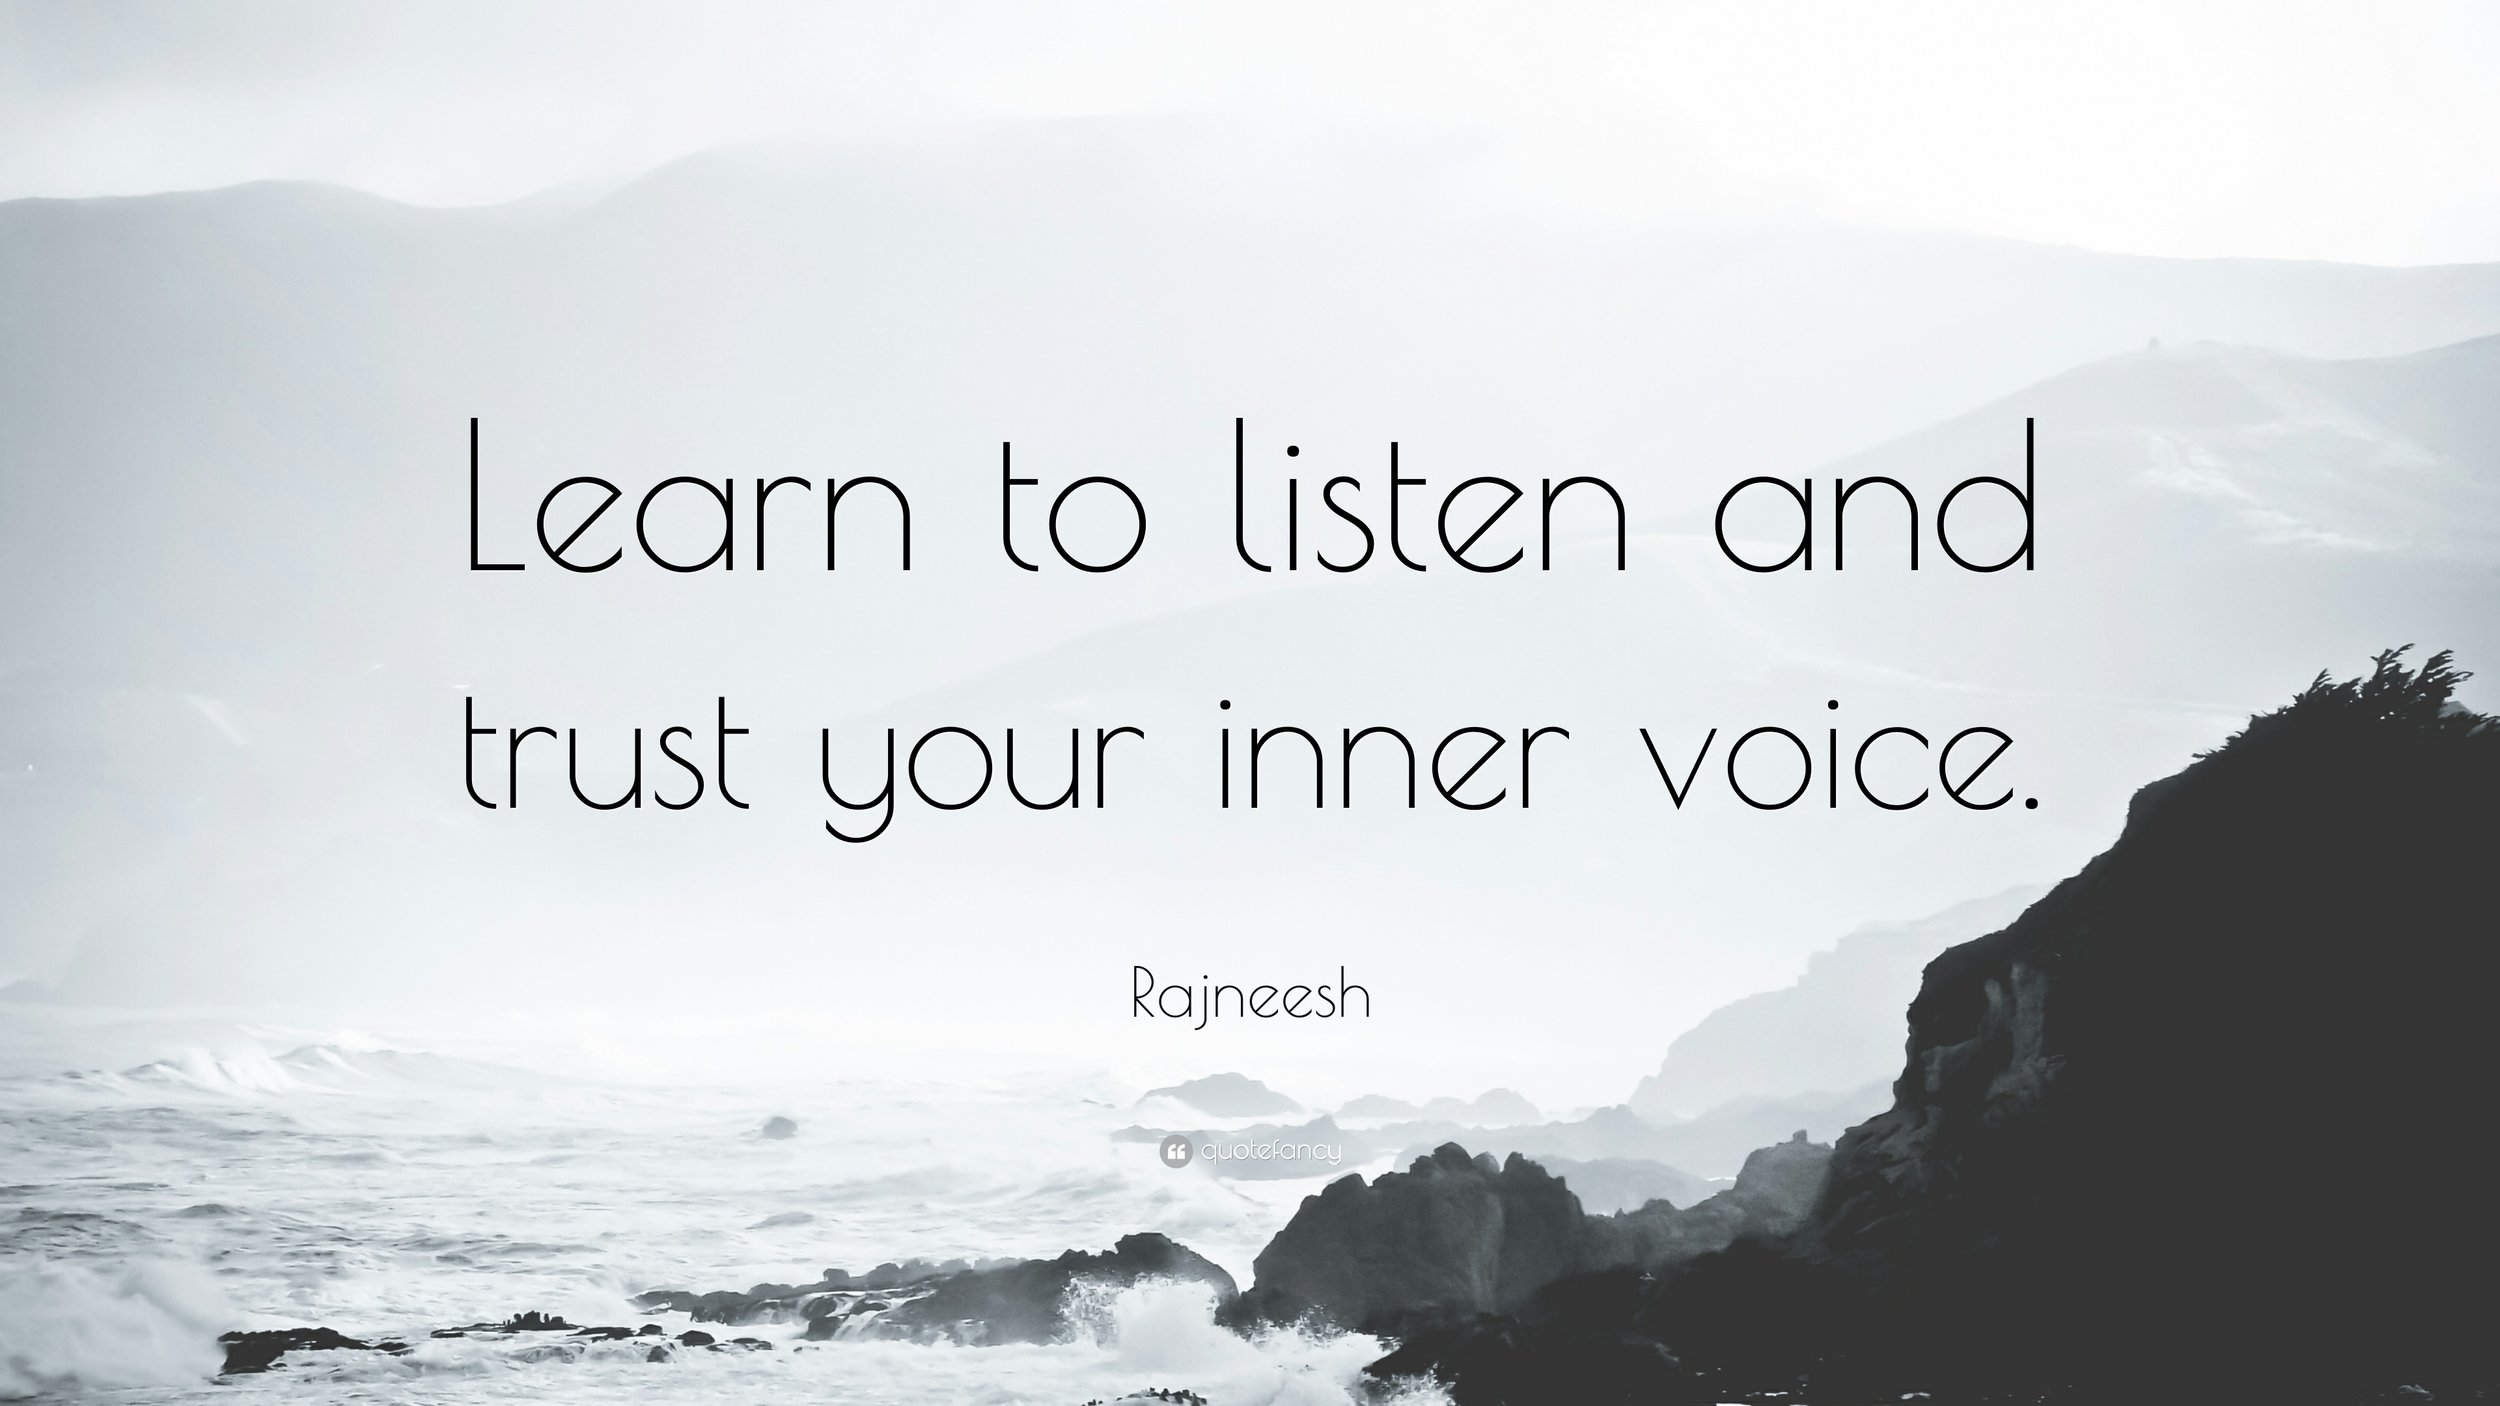 547142-Rajneesh-Quote-Learn-to-listen-and-trust-your-inner-voice.jpg